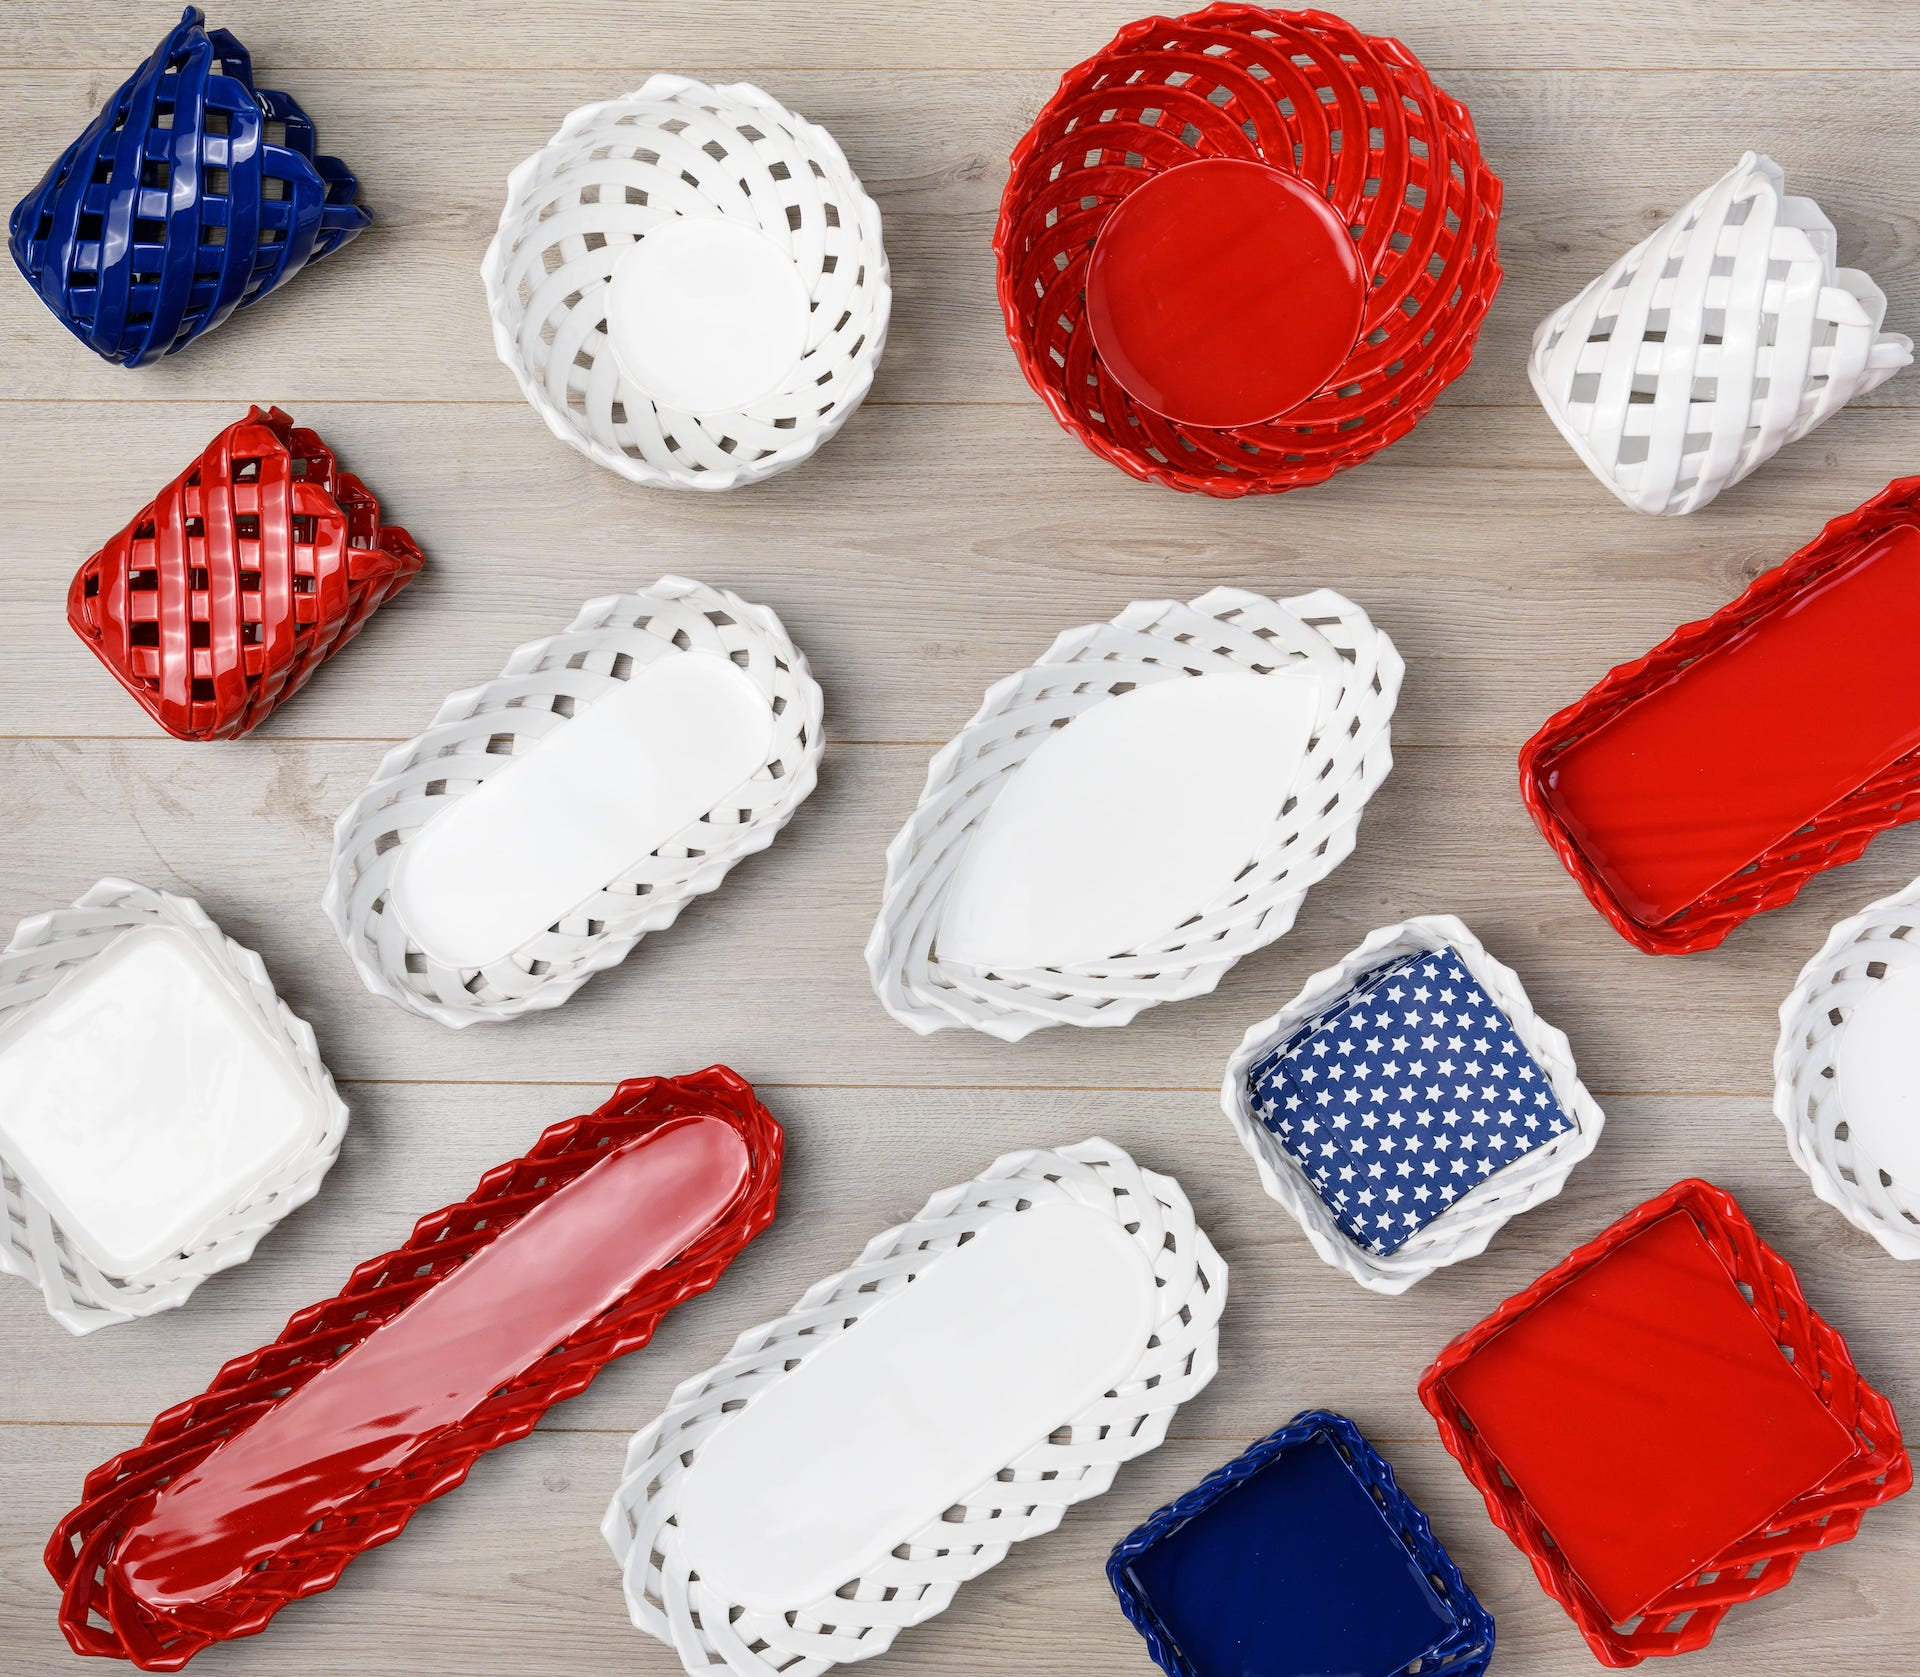 Ceramic Woven Baskets